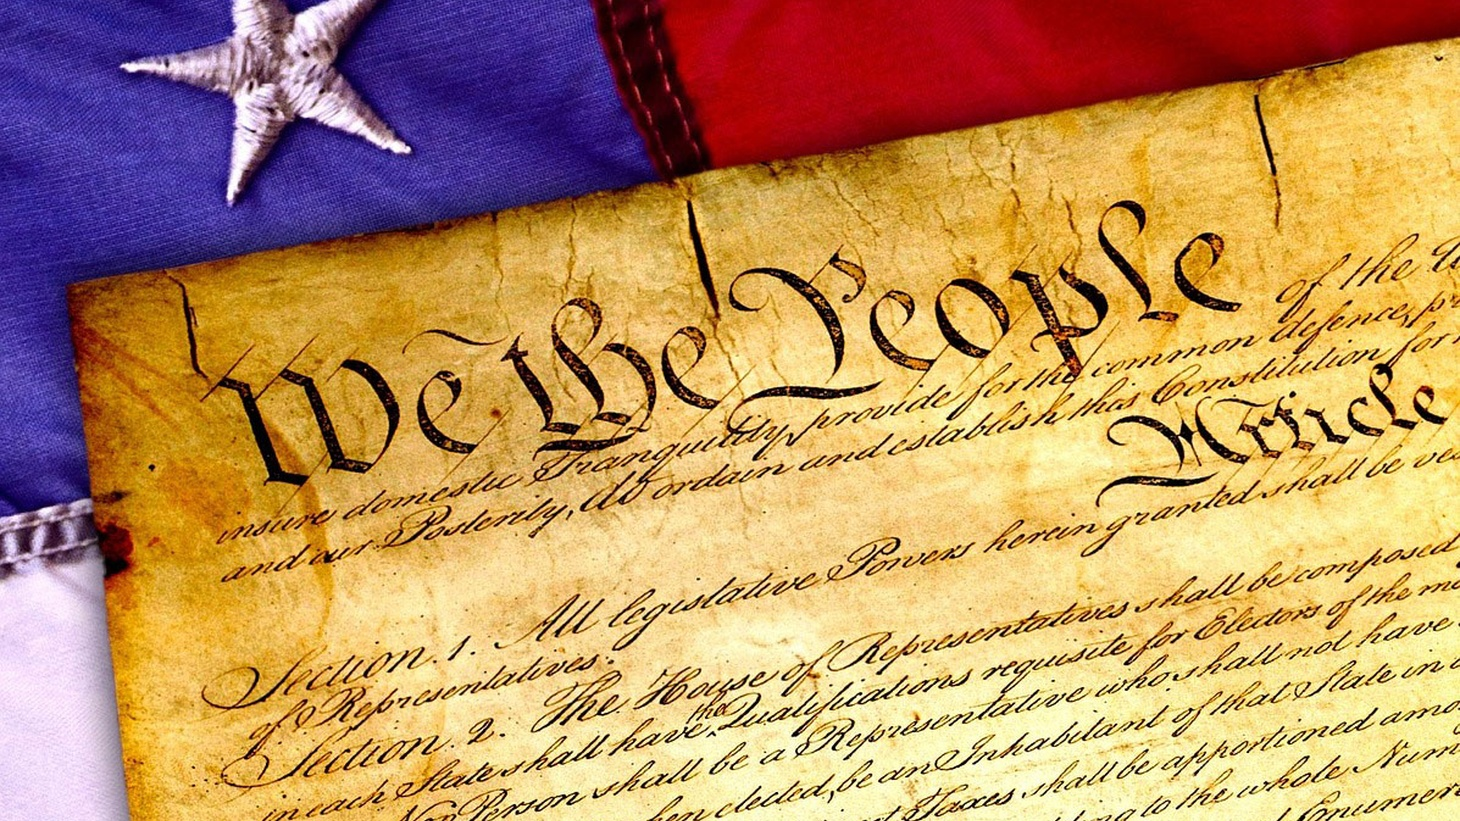 The doctrine of States' Rights has long been used by conservatives against liberal policies dictated by Washington. Now, progressives say they'll invoke States' Rights to resist federal rules and regulations expected from the Republican Congress and the Trump Administration.